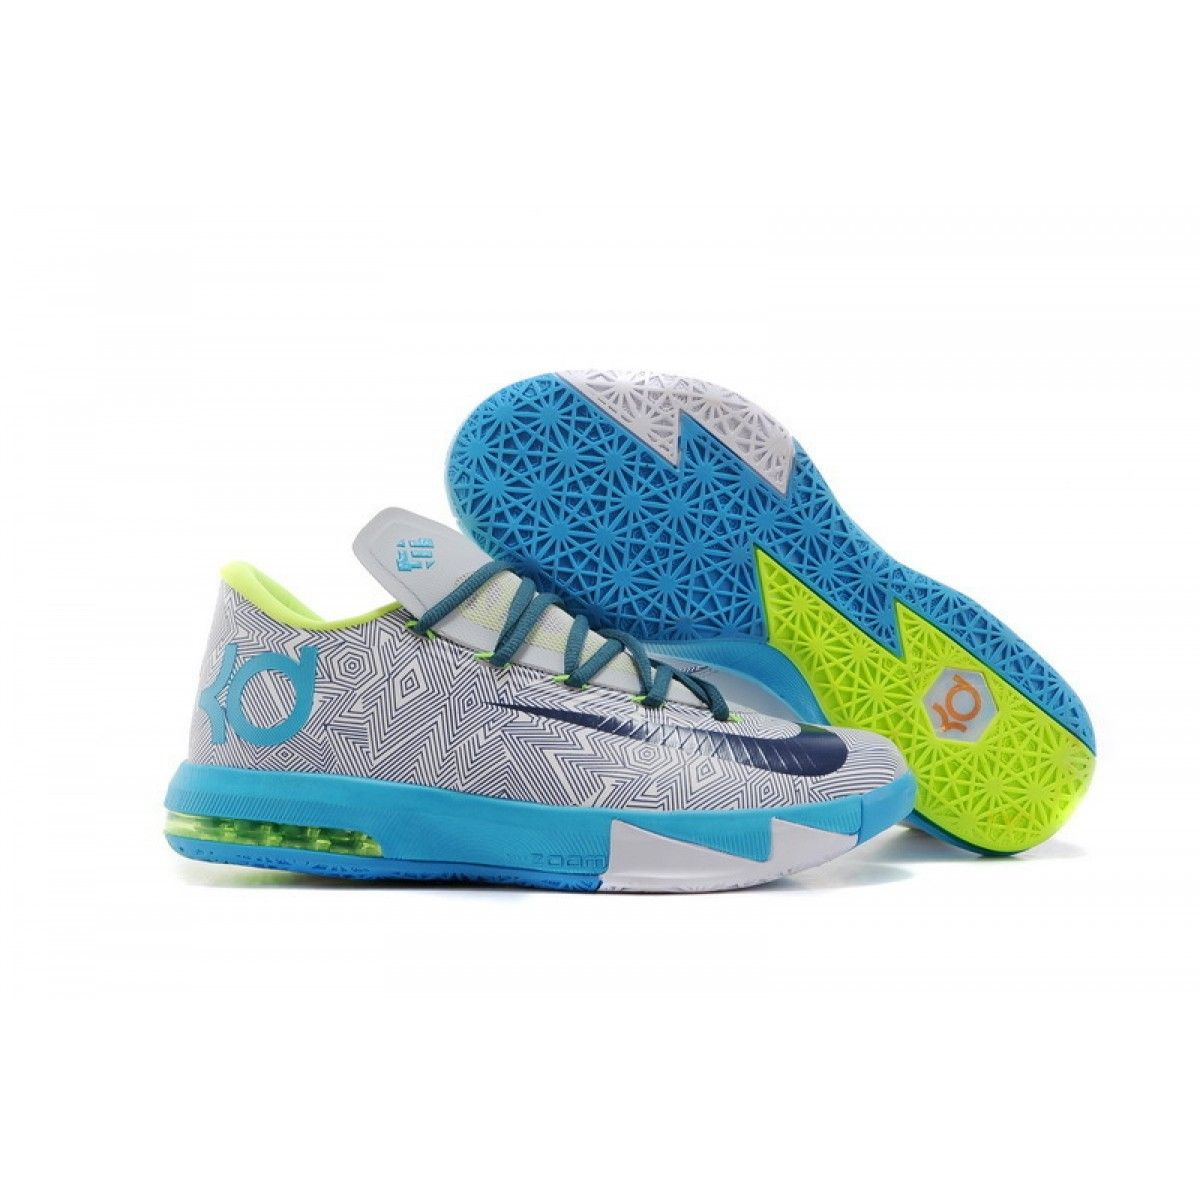 sale retailer 07170 57524 Nike Zoom Kevin Durant Kd 6 Grey White Blue